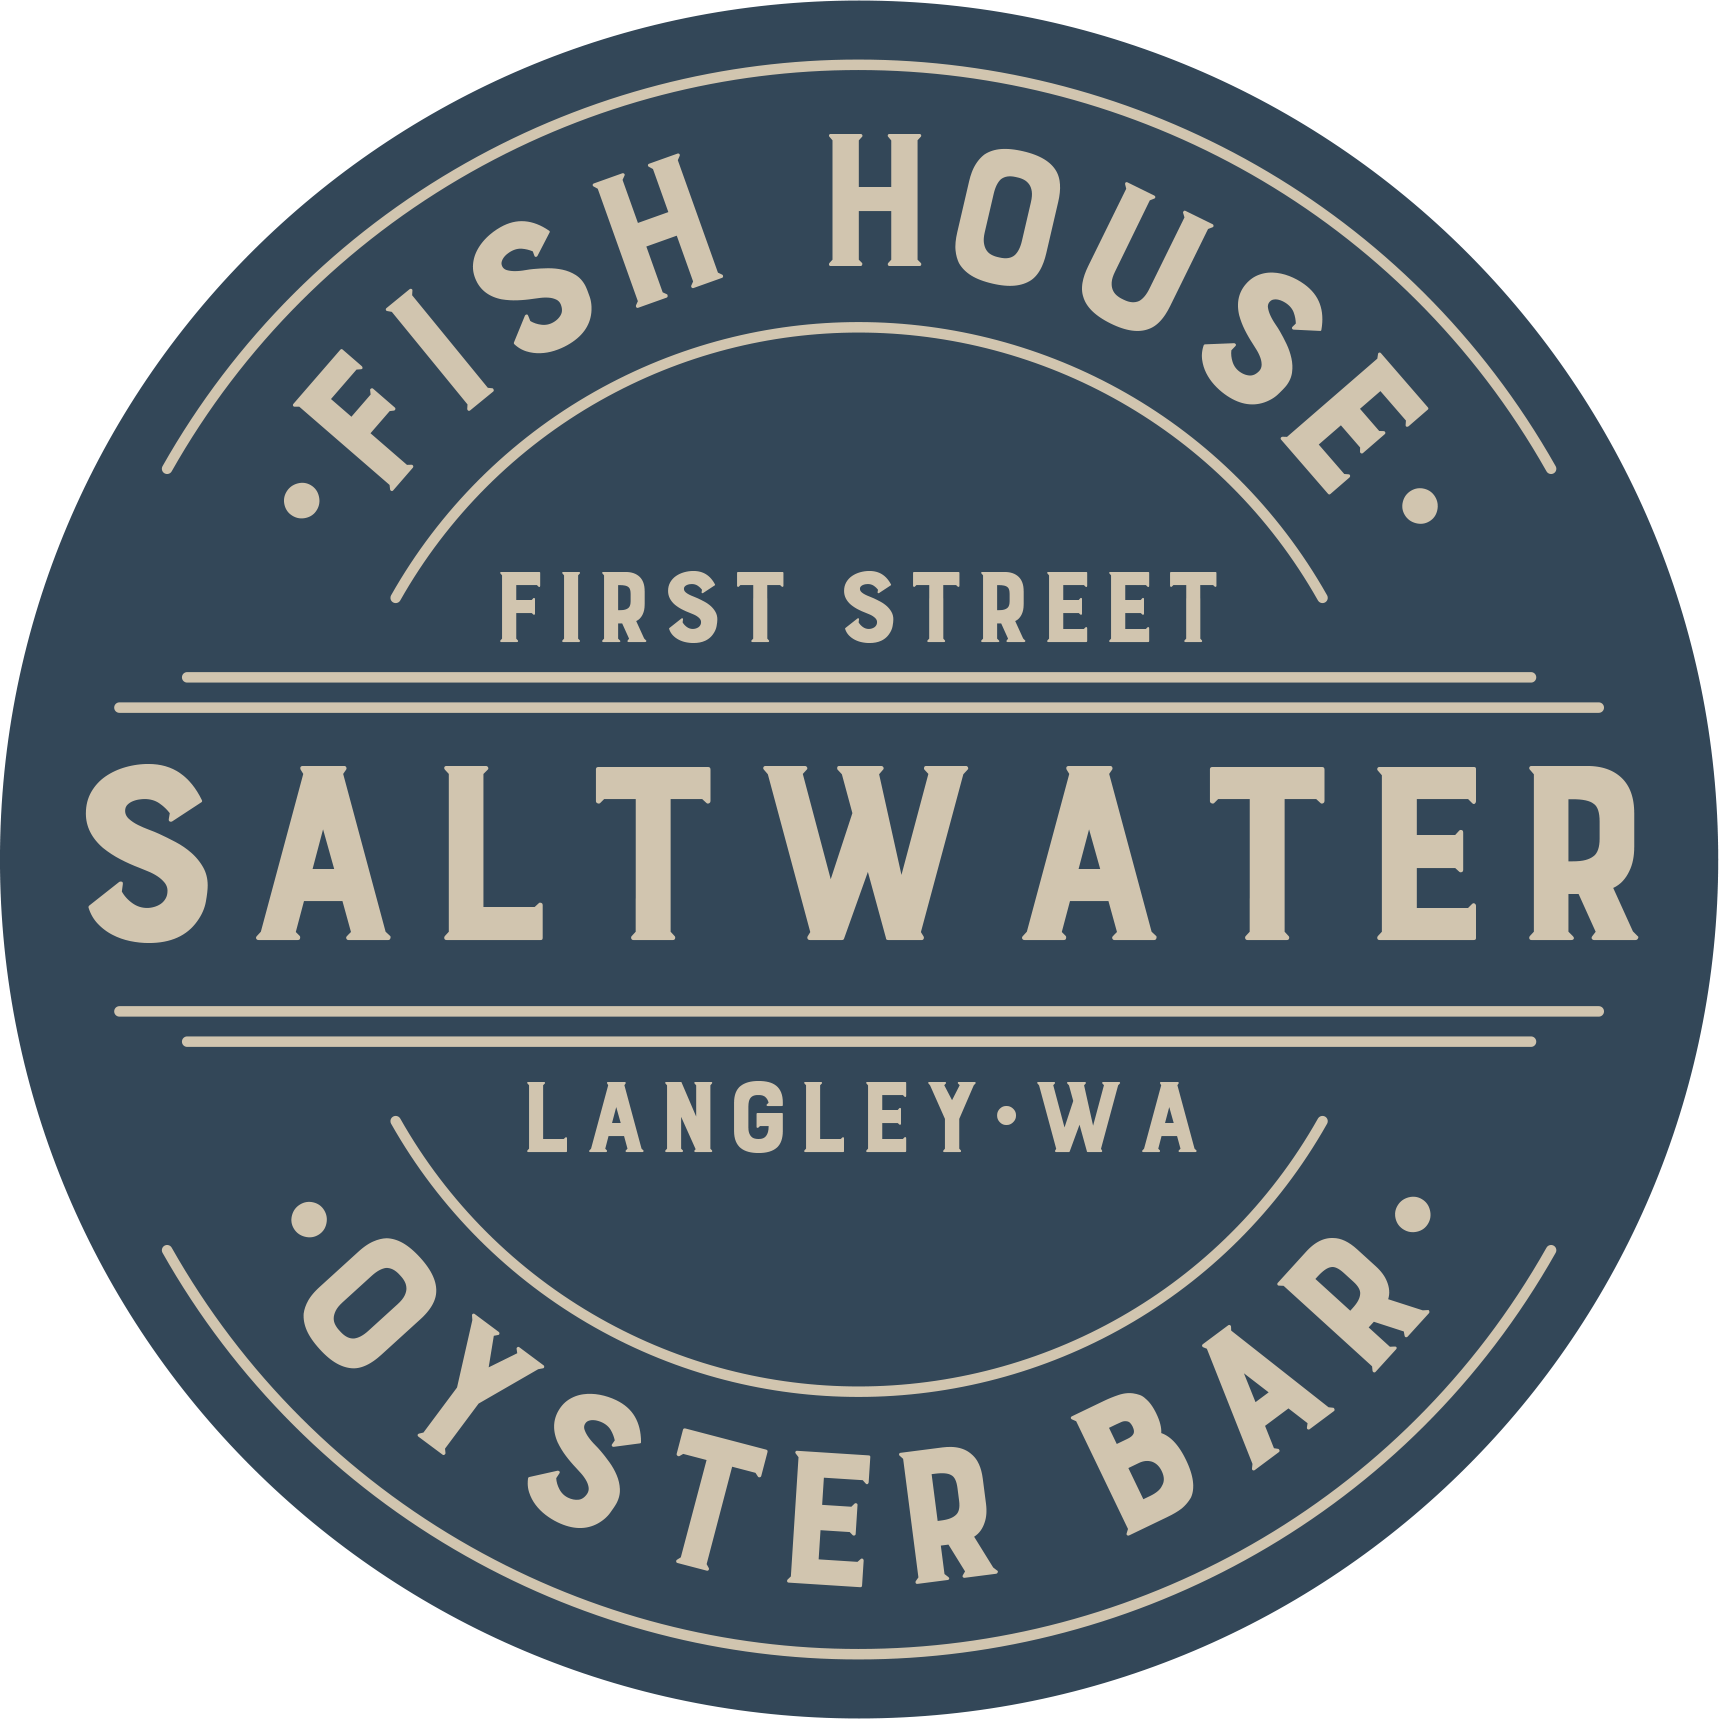 Saltwater Fish House & Oyster Bar in Langley, WA